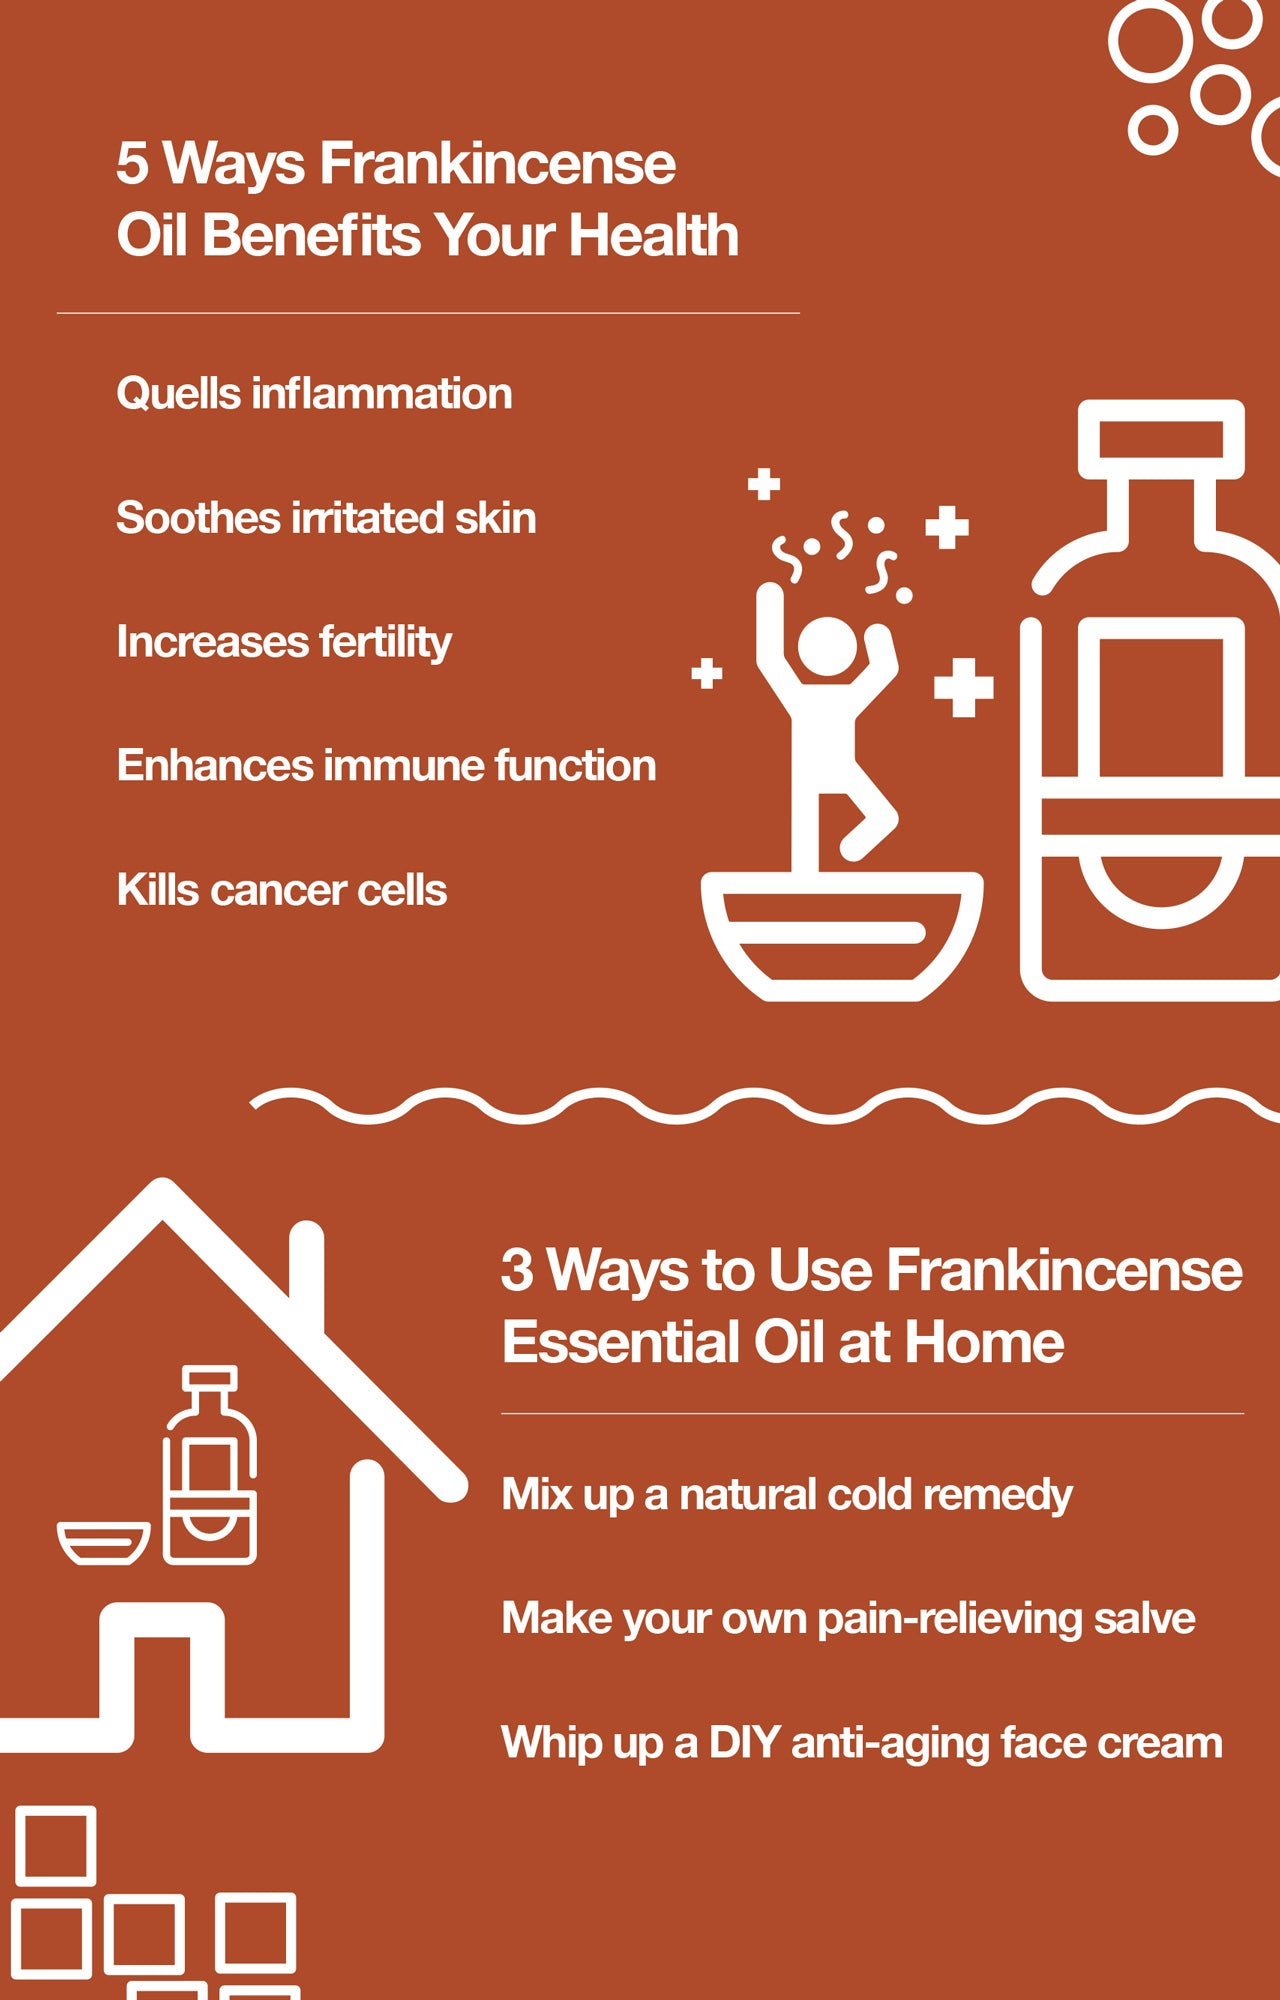 5 Ways Frankincense Oil Benefits Your Health